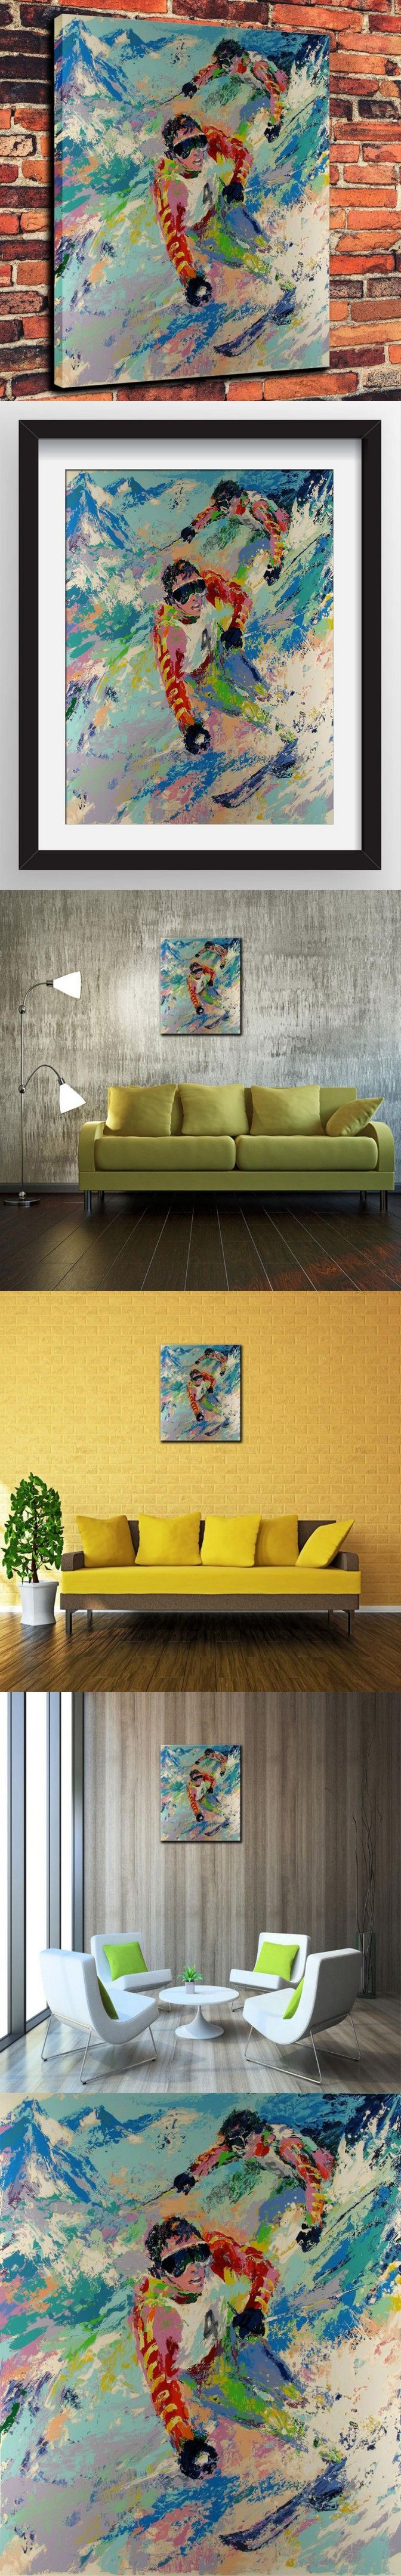 Canvas Artwork Prints Watercolor Oil Painting for Western Home Decor Which Skiing Twins By LeRoy Neiman Painted( No Framed ) $30